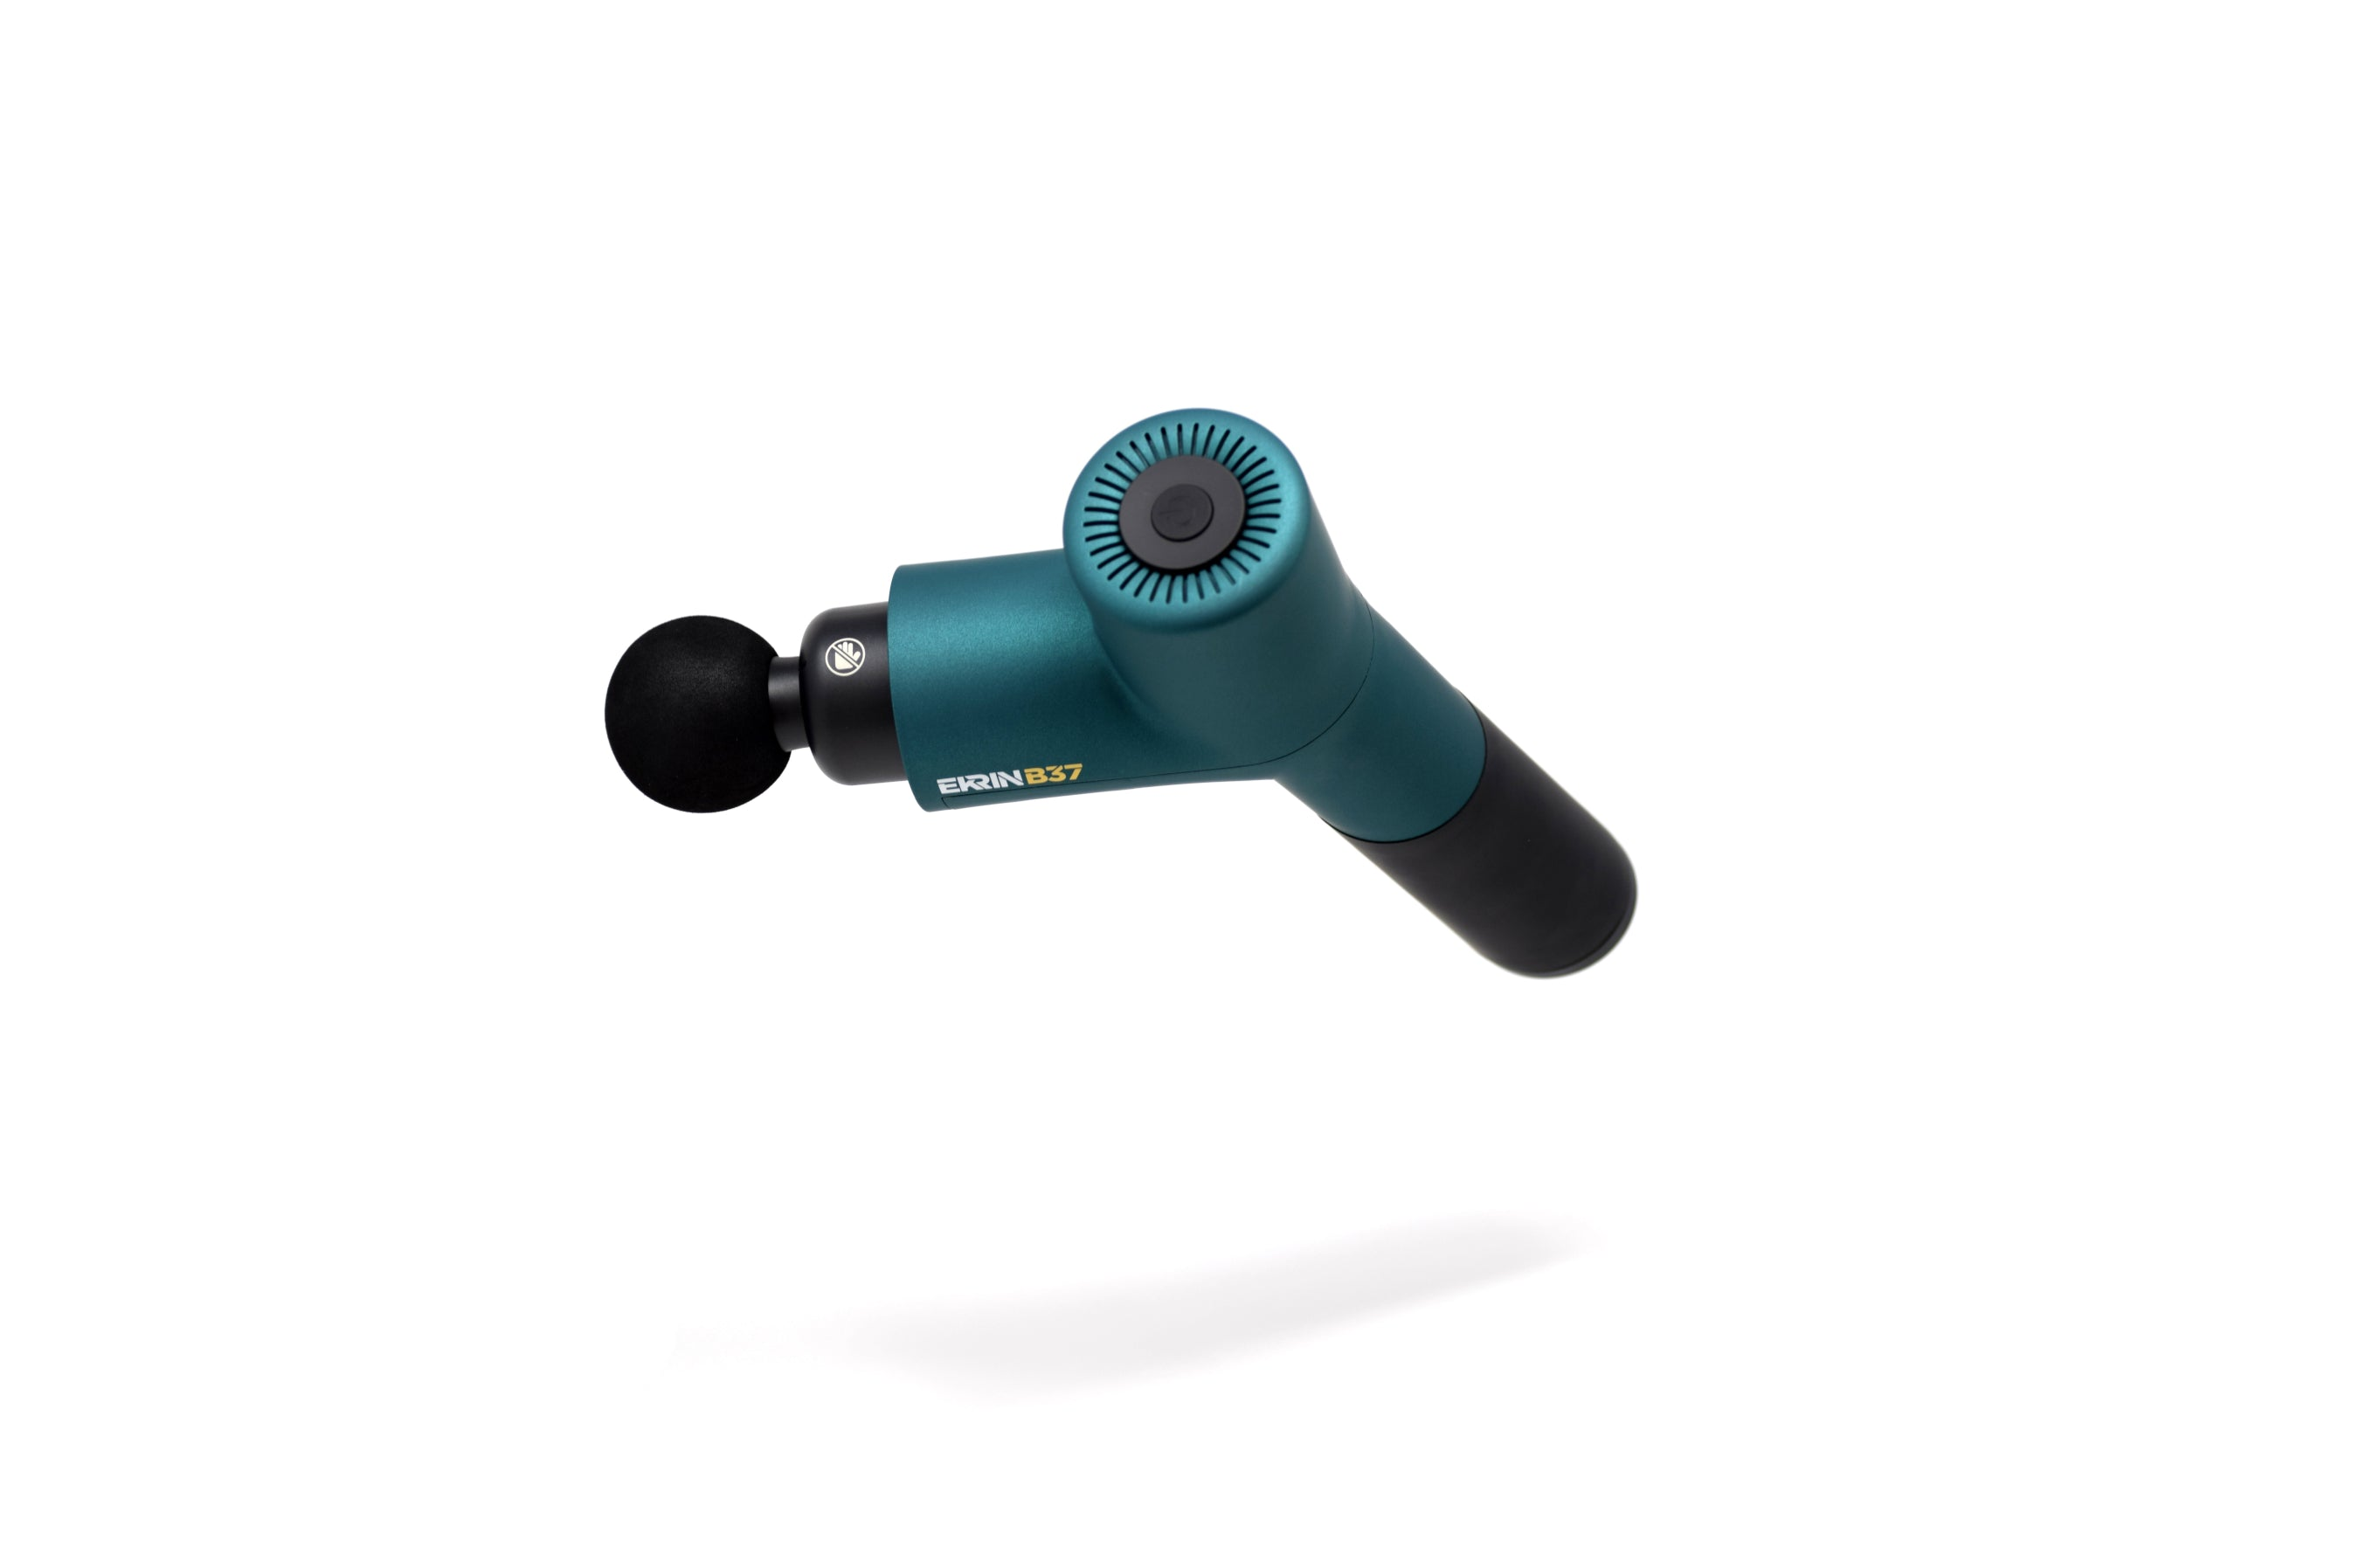 B37 Percussion Massager